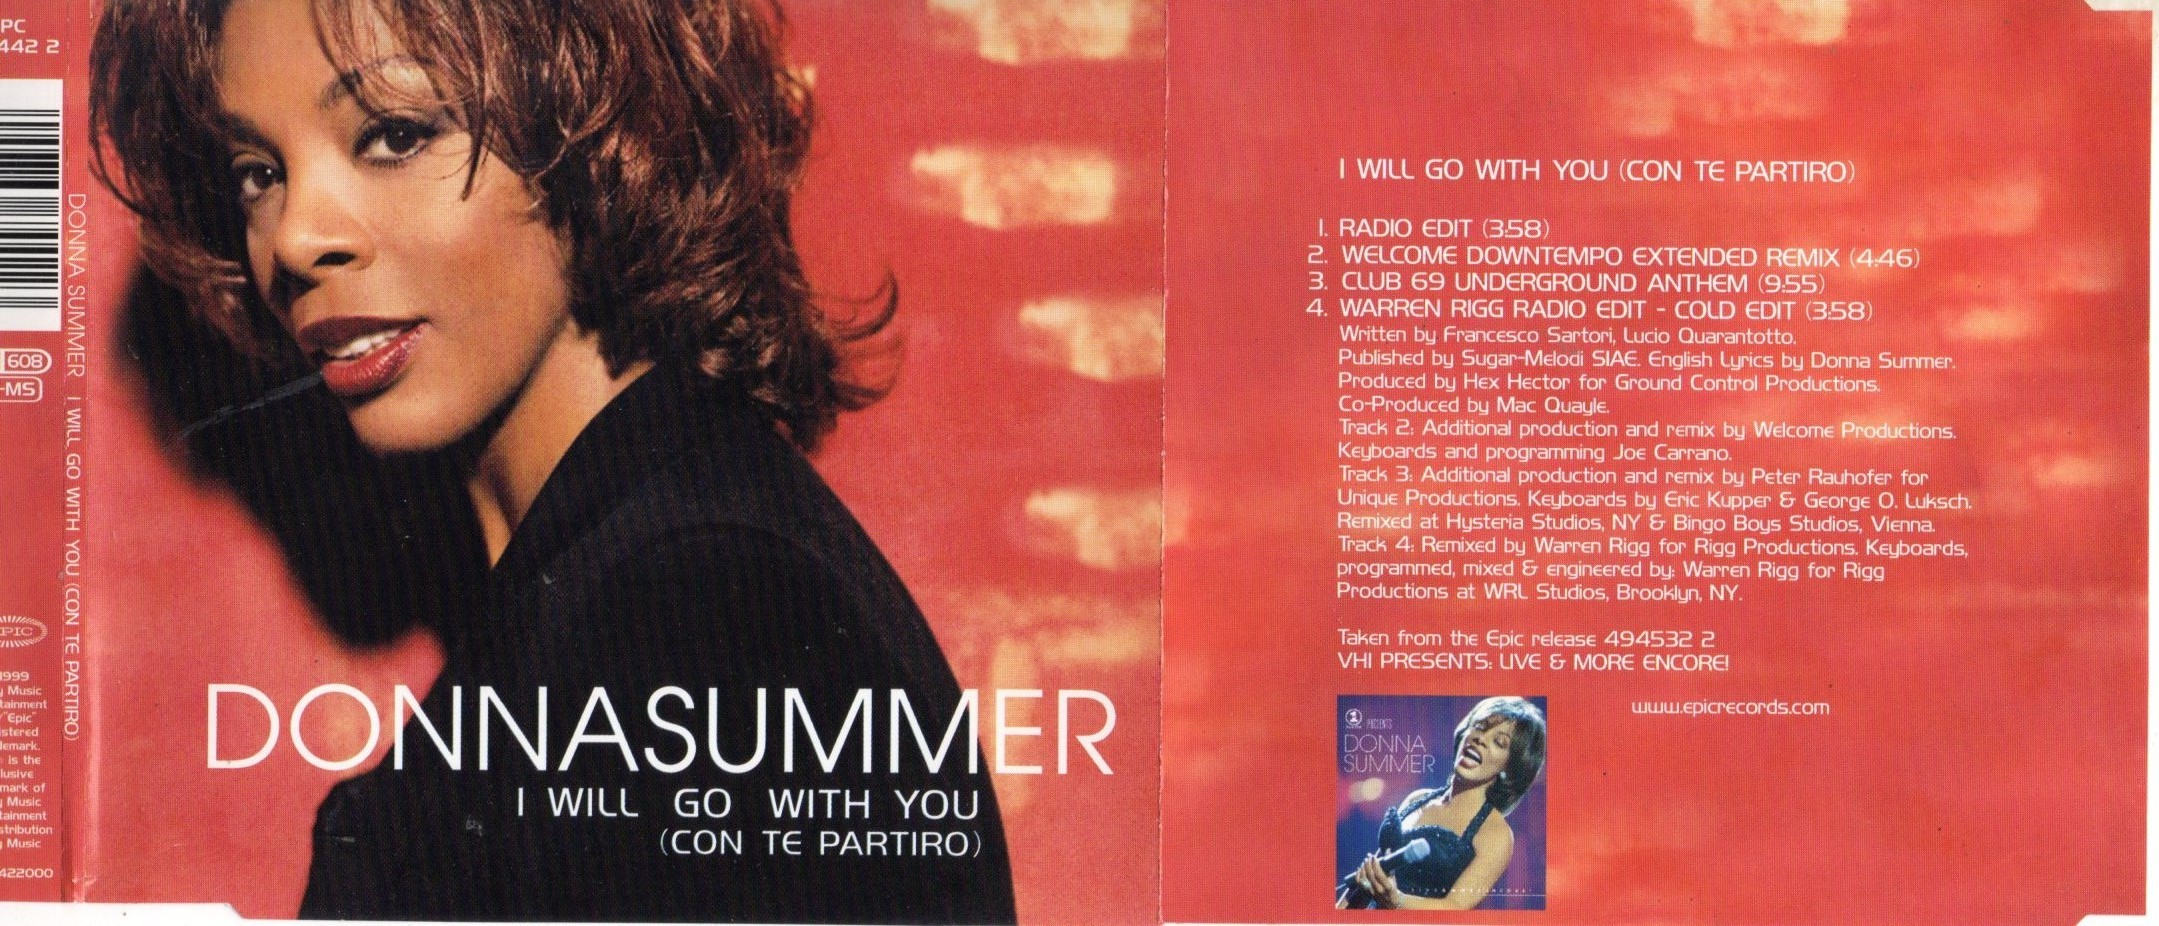 DONNA SUMMER - I will go with you 4 remixes Jewel case - CD Maxi